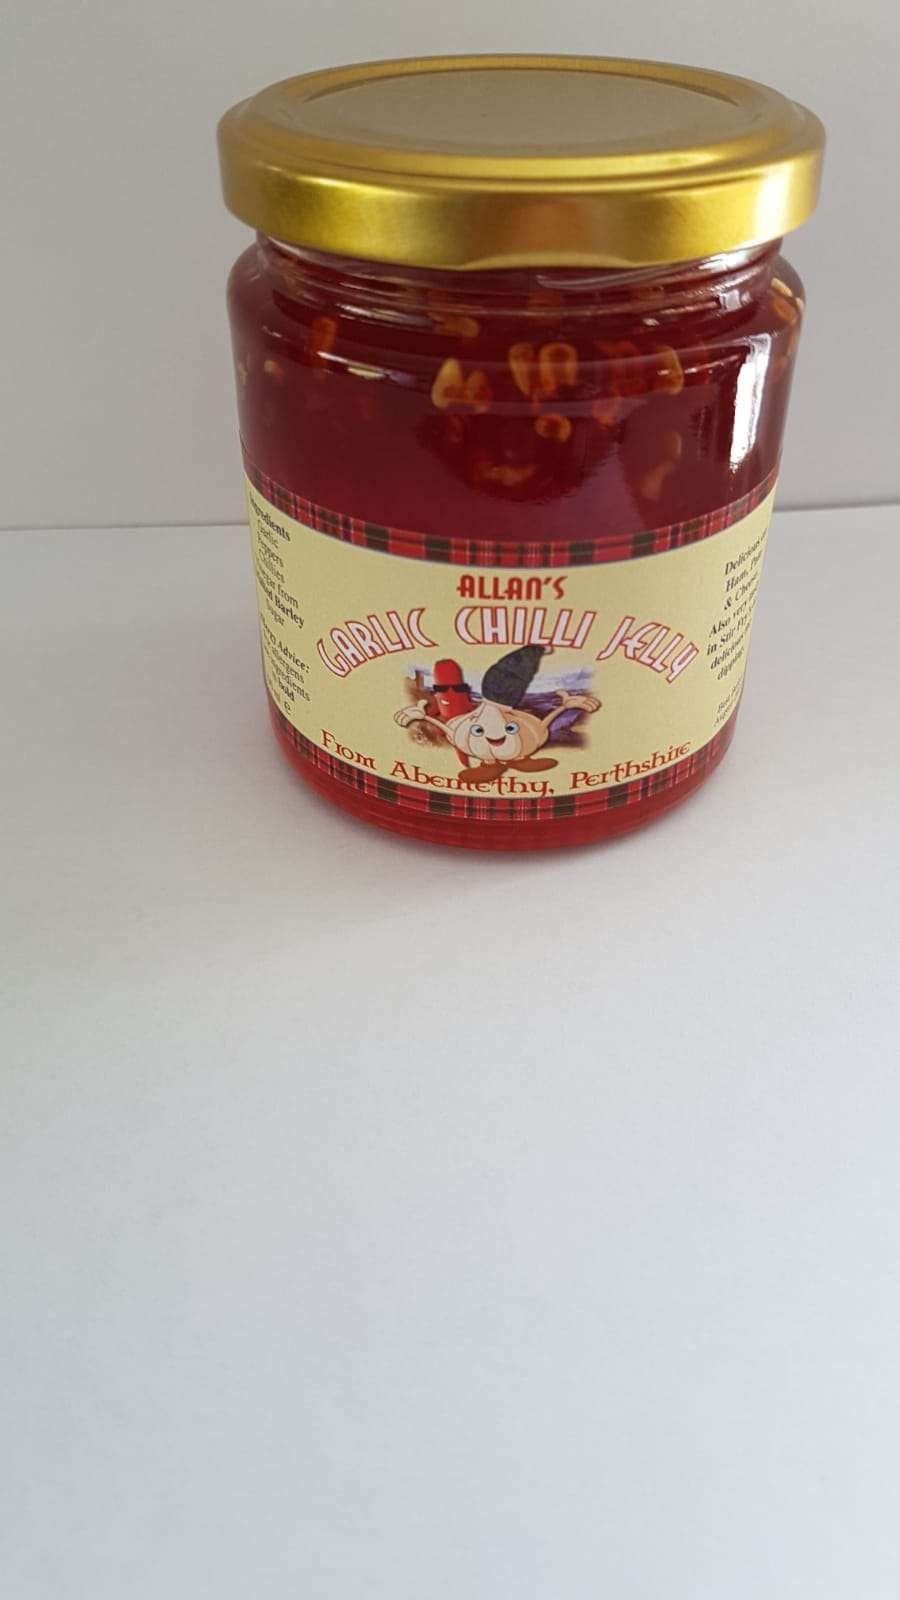 Allan's Garlic Chilli Jelly